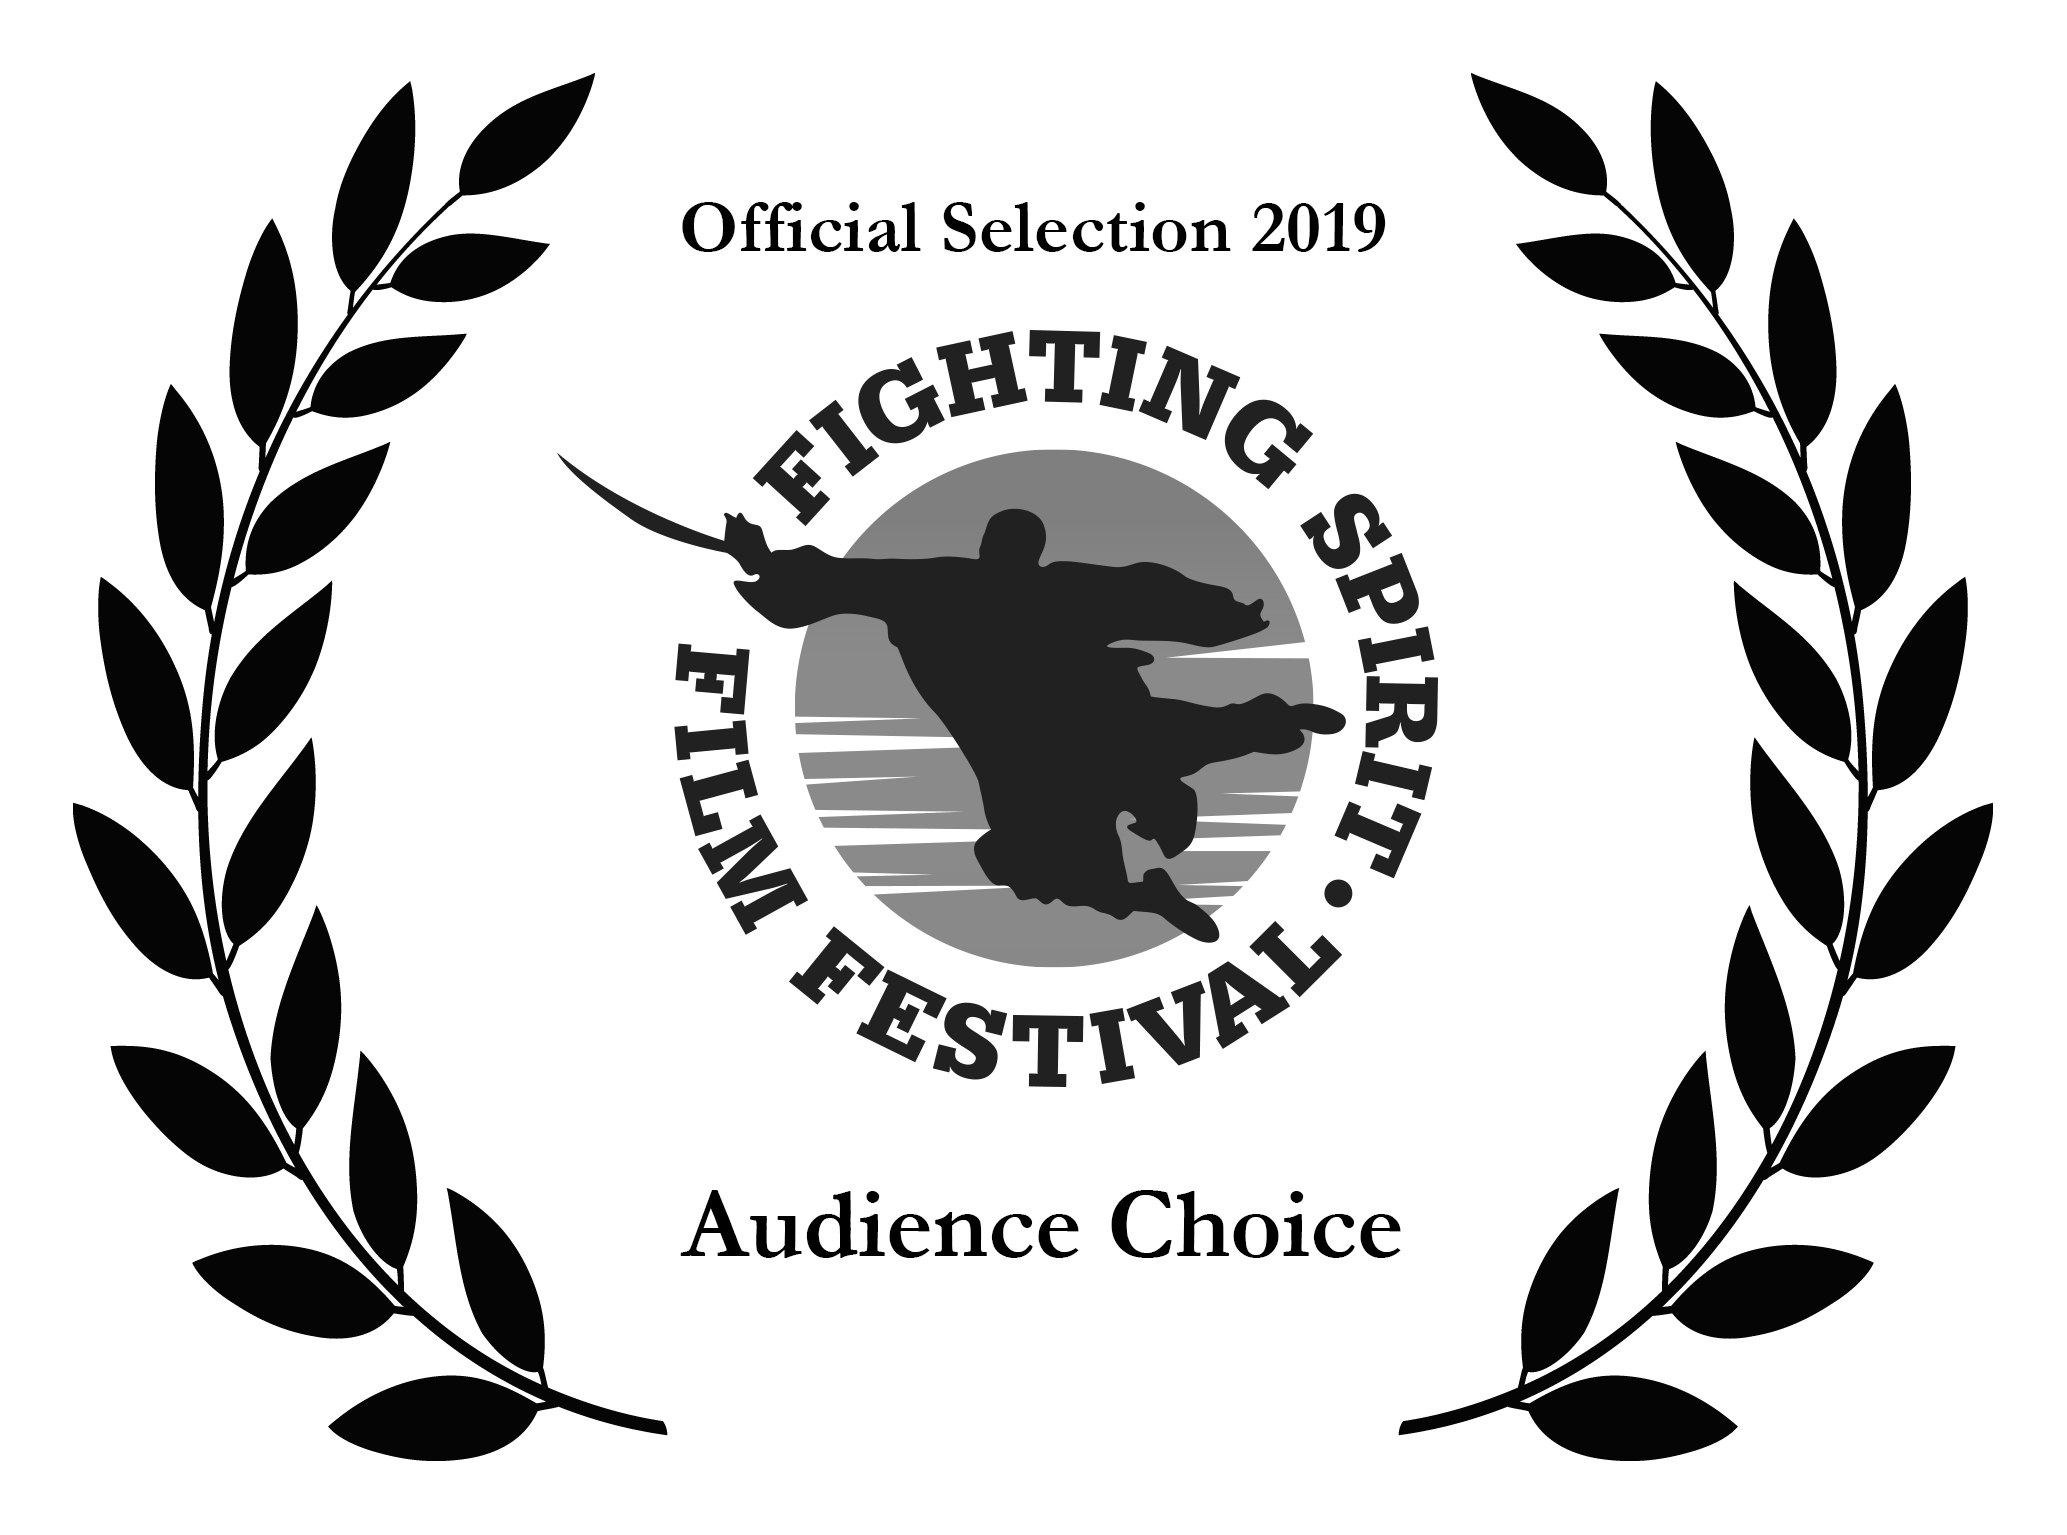 Fighting_Spirit_Film_Festival_2019_Audience_choice.jpg